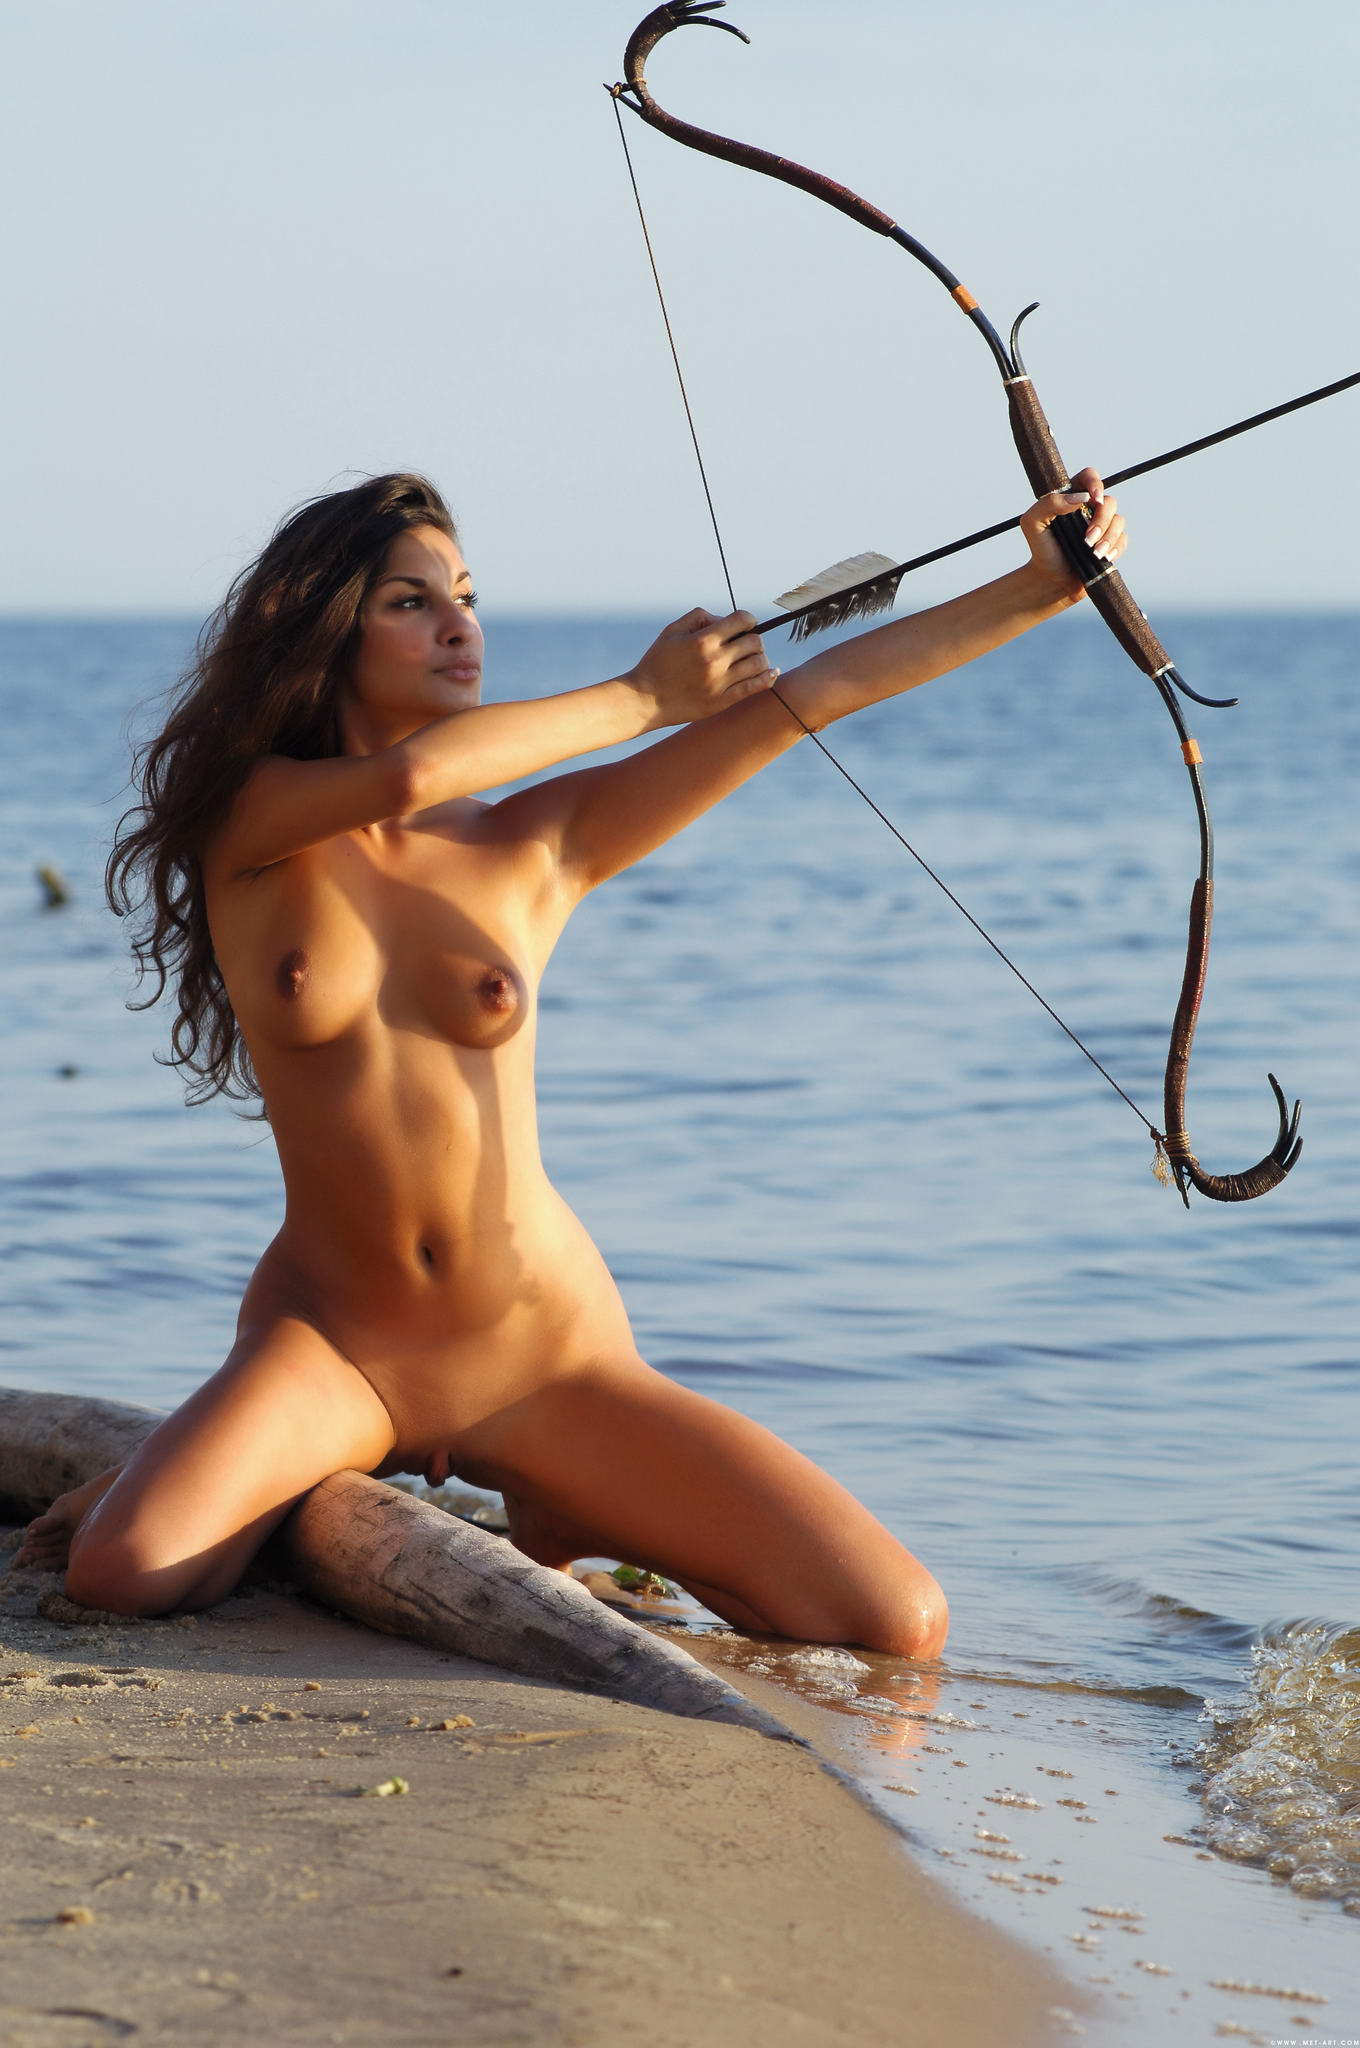 Female archers naked erotic photos